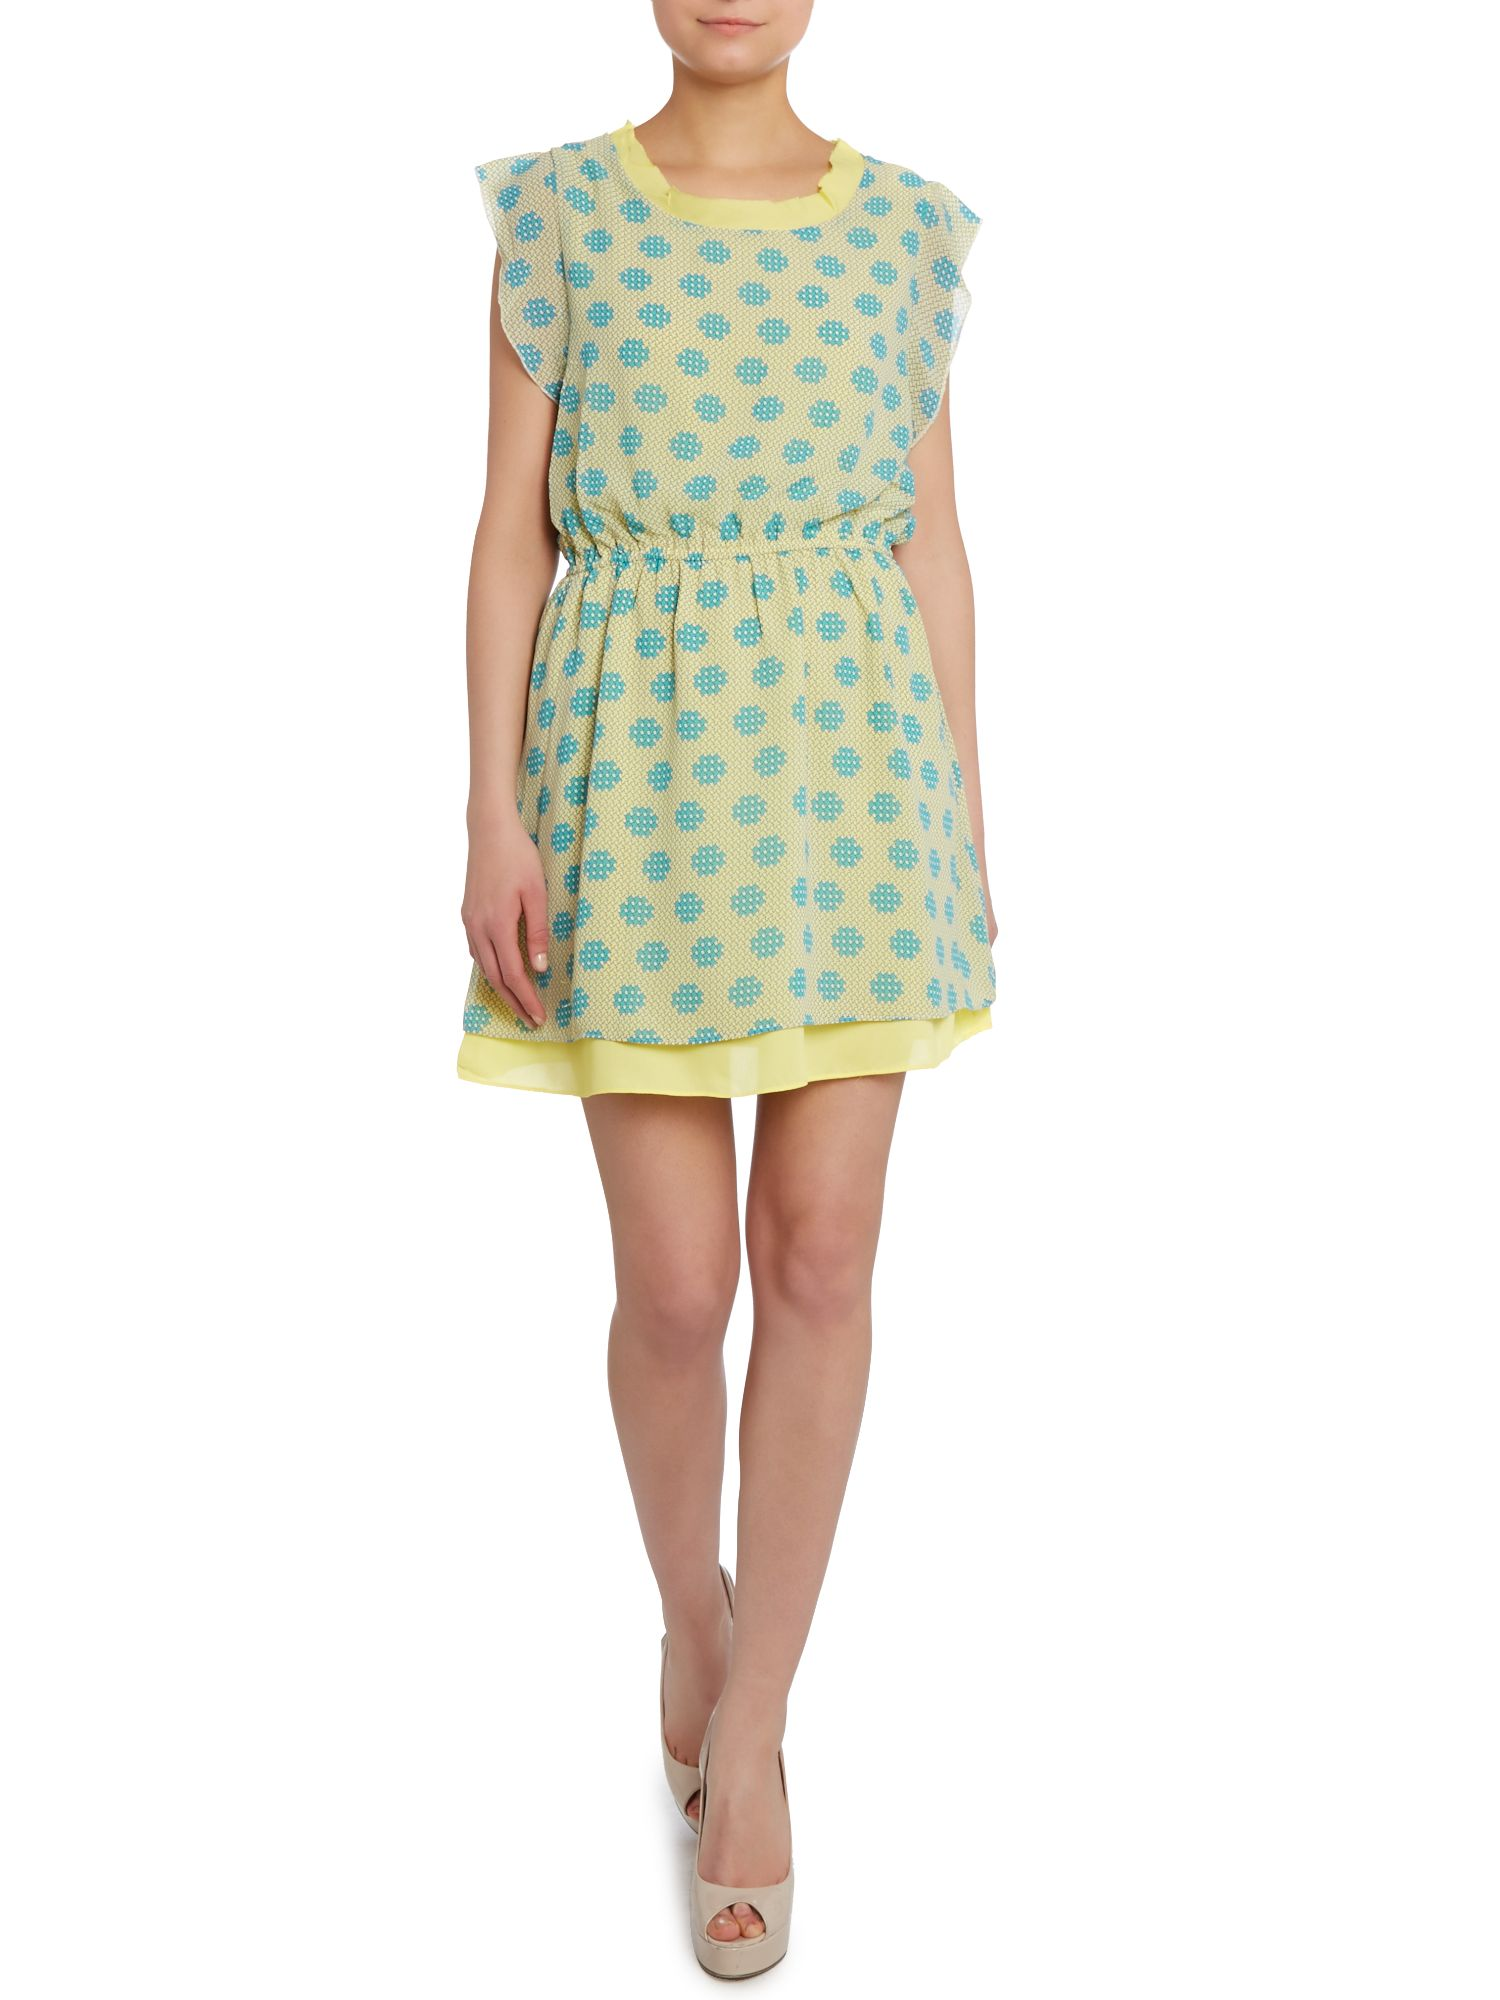 Pastel pixel print dress